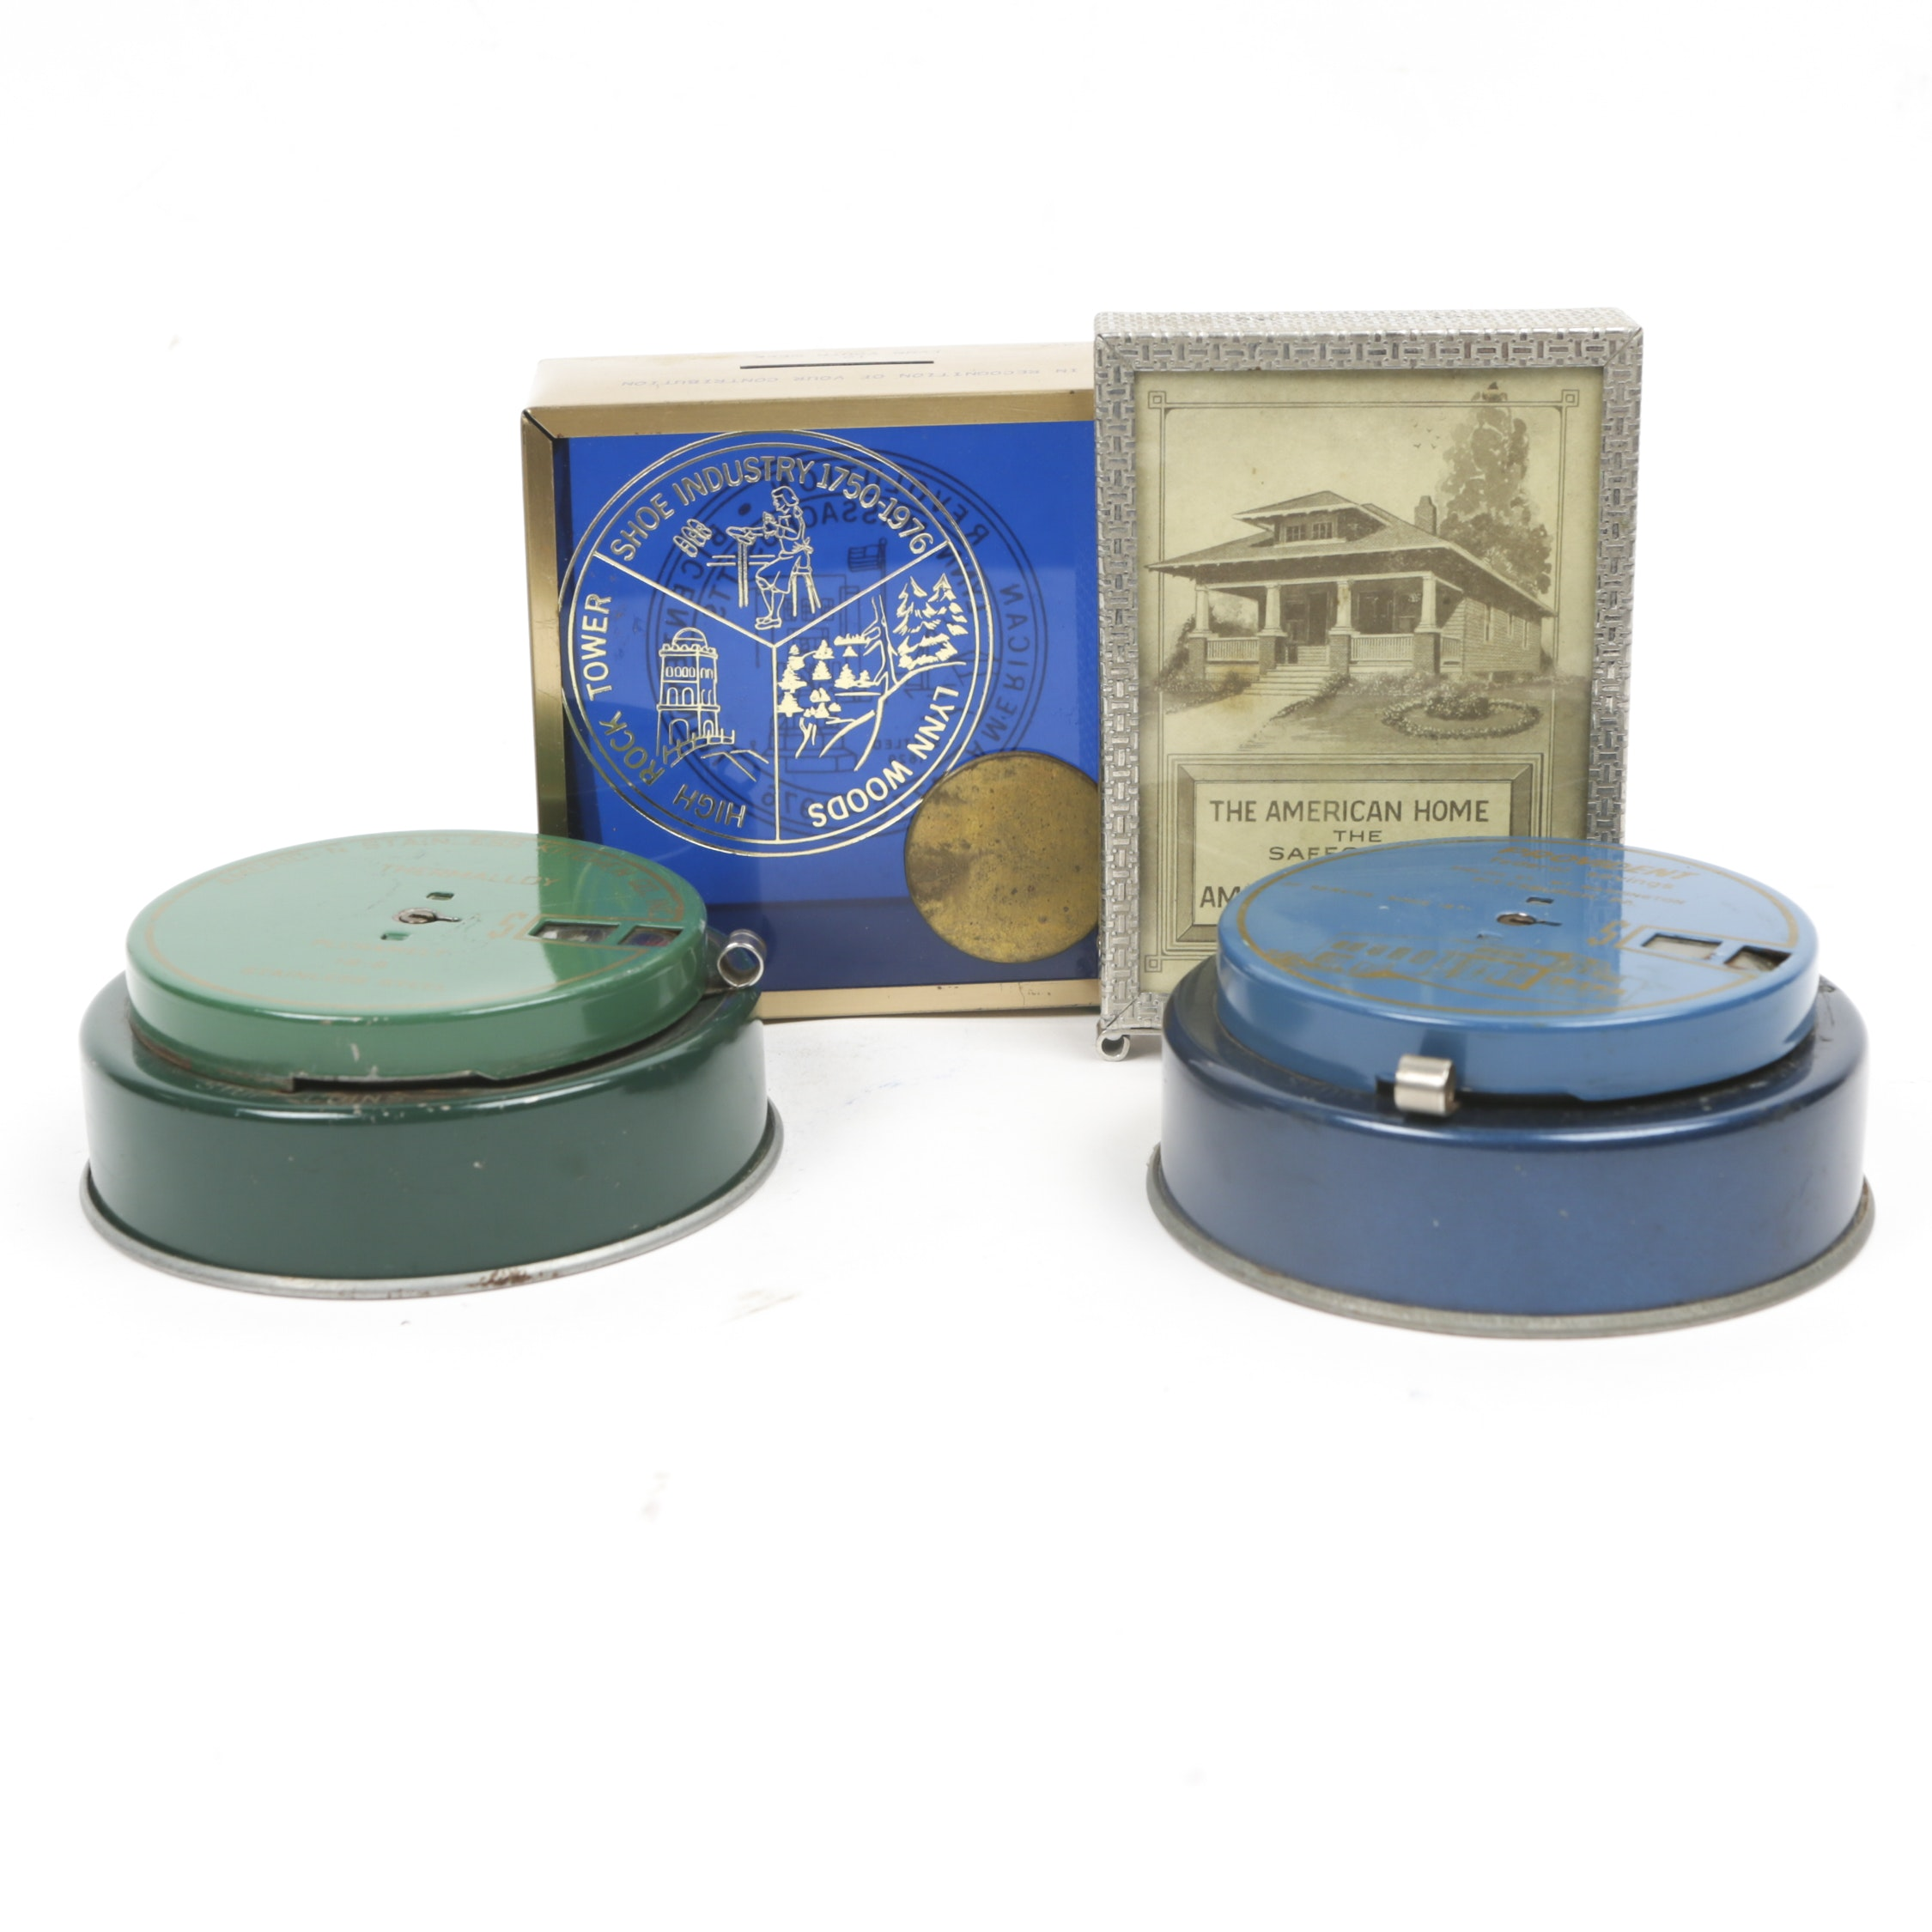 Vintage Metal and Glass Advertising Coin Banks